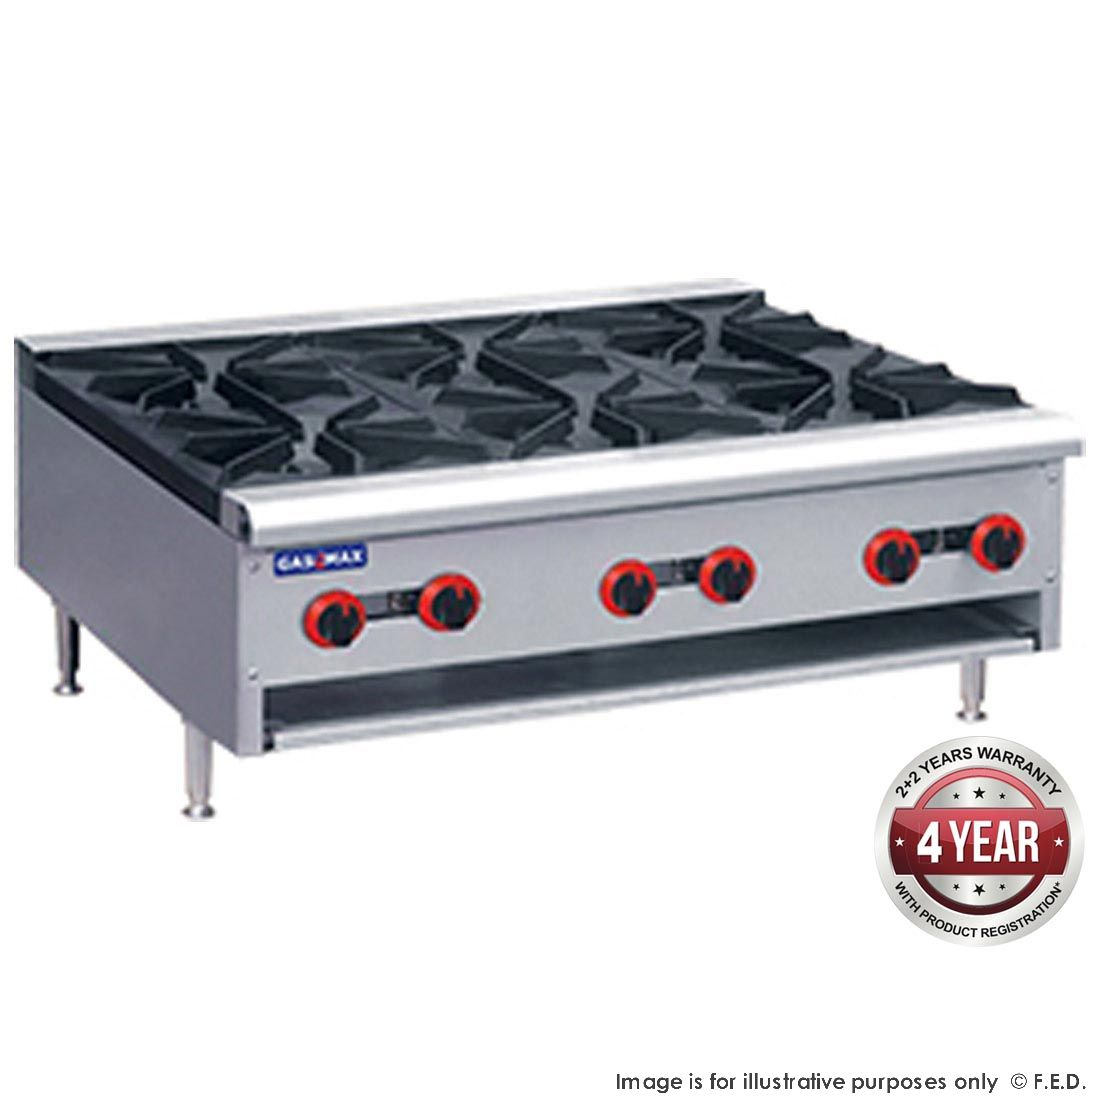 FED Gasmax Gas burner hob With Flame Failure